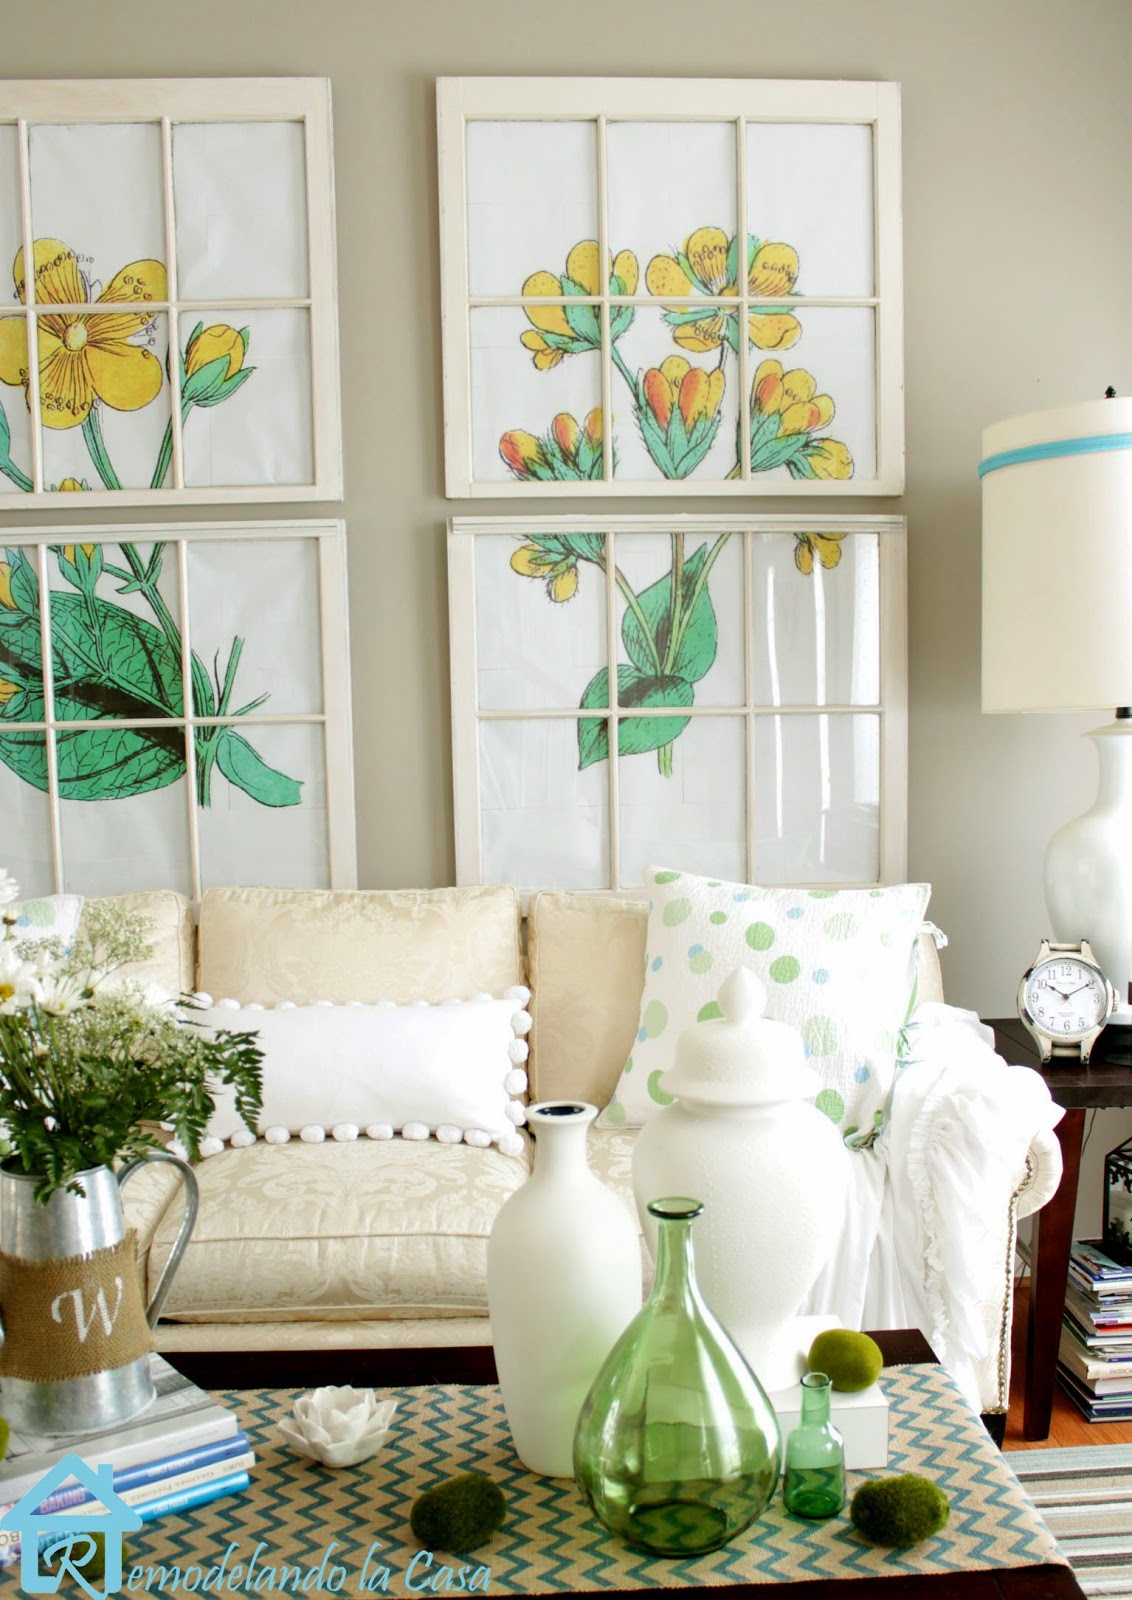 living room decorated for Spring with big flower art